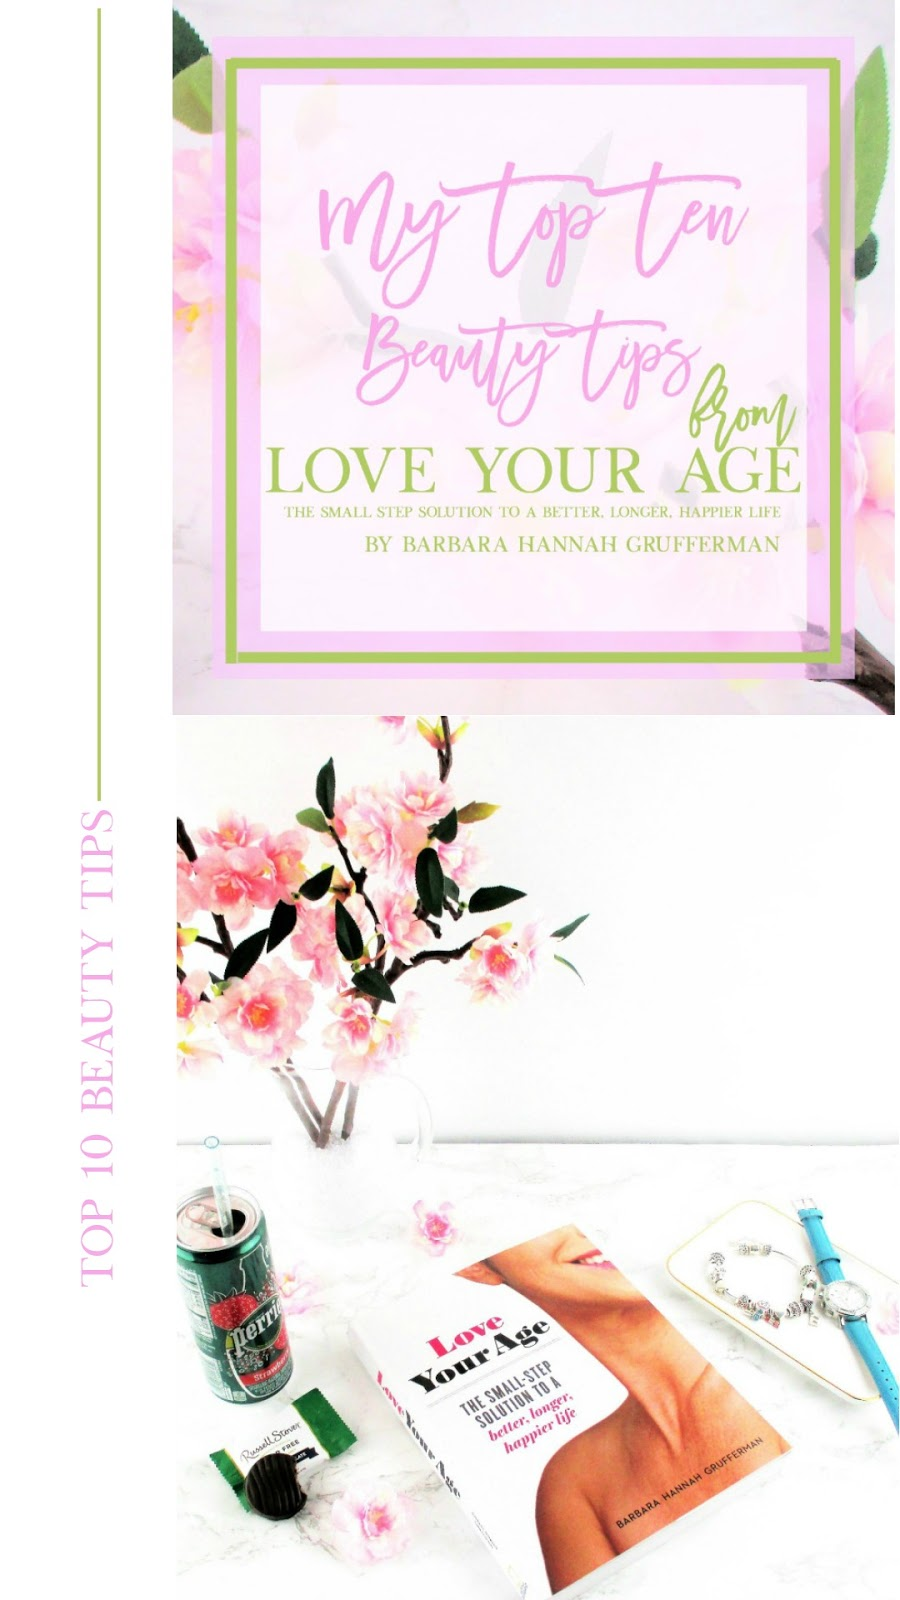 My Top Ten Beauty Tips from Love Your Age The Small Step Solution